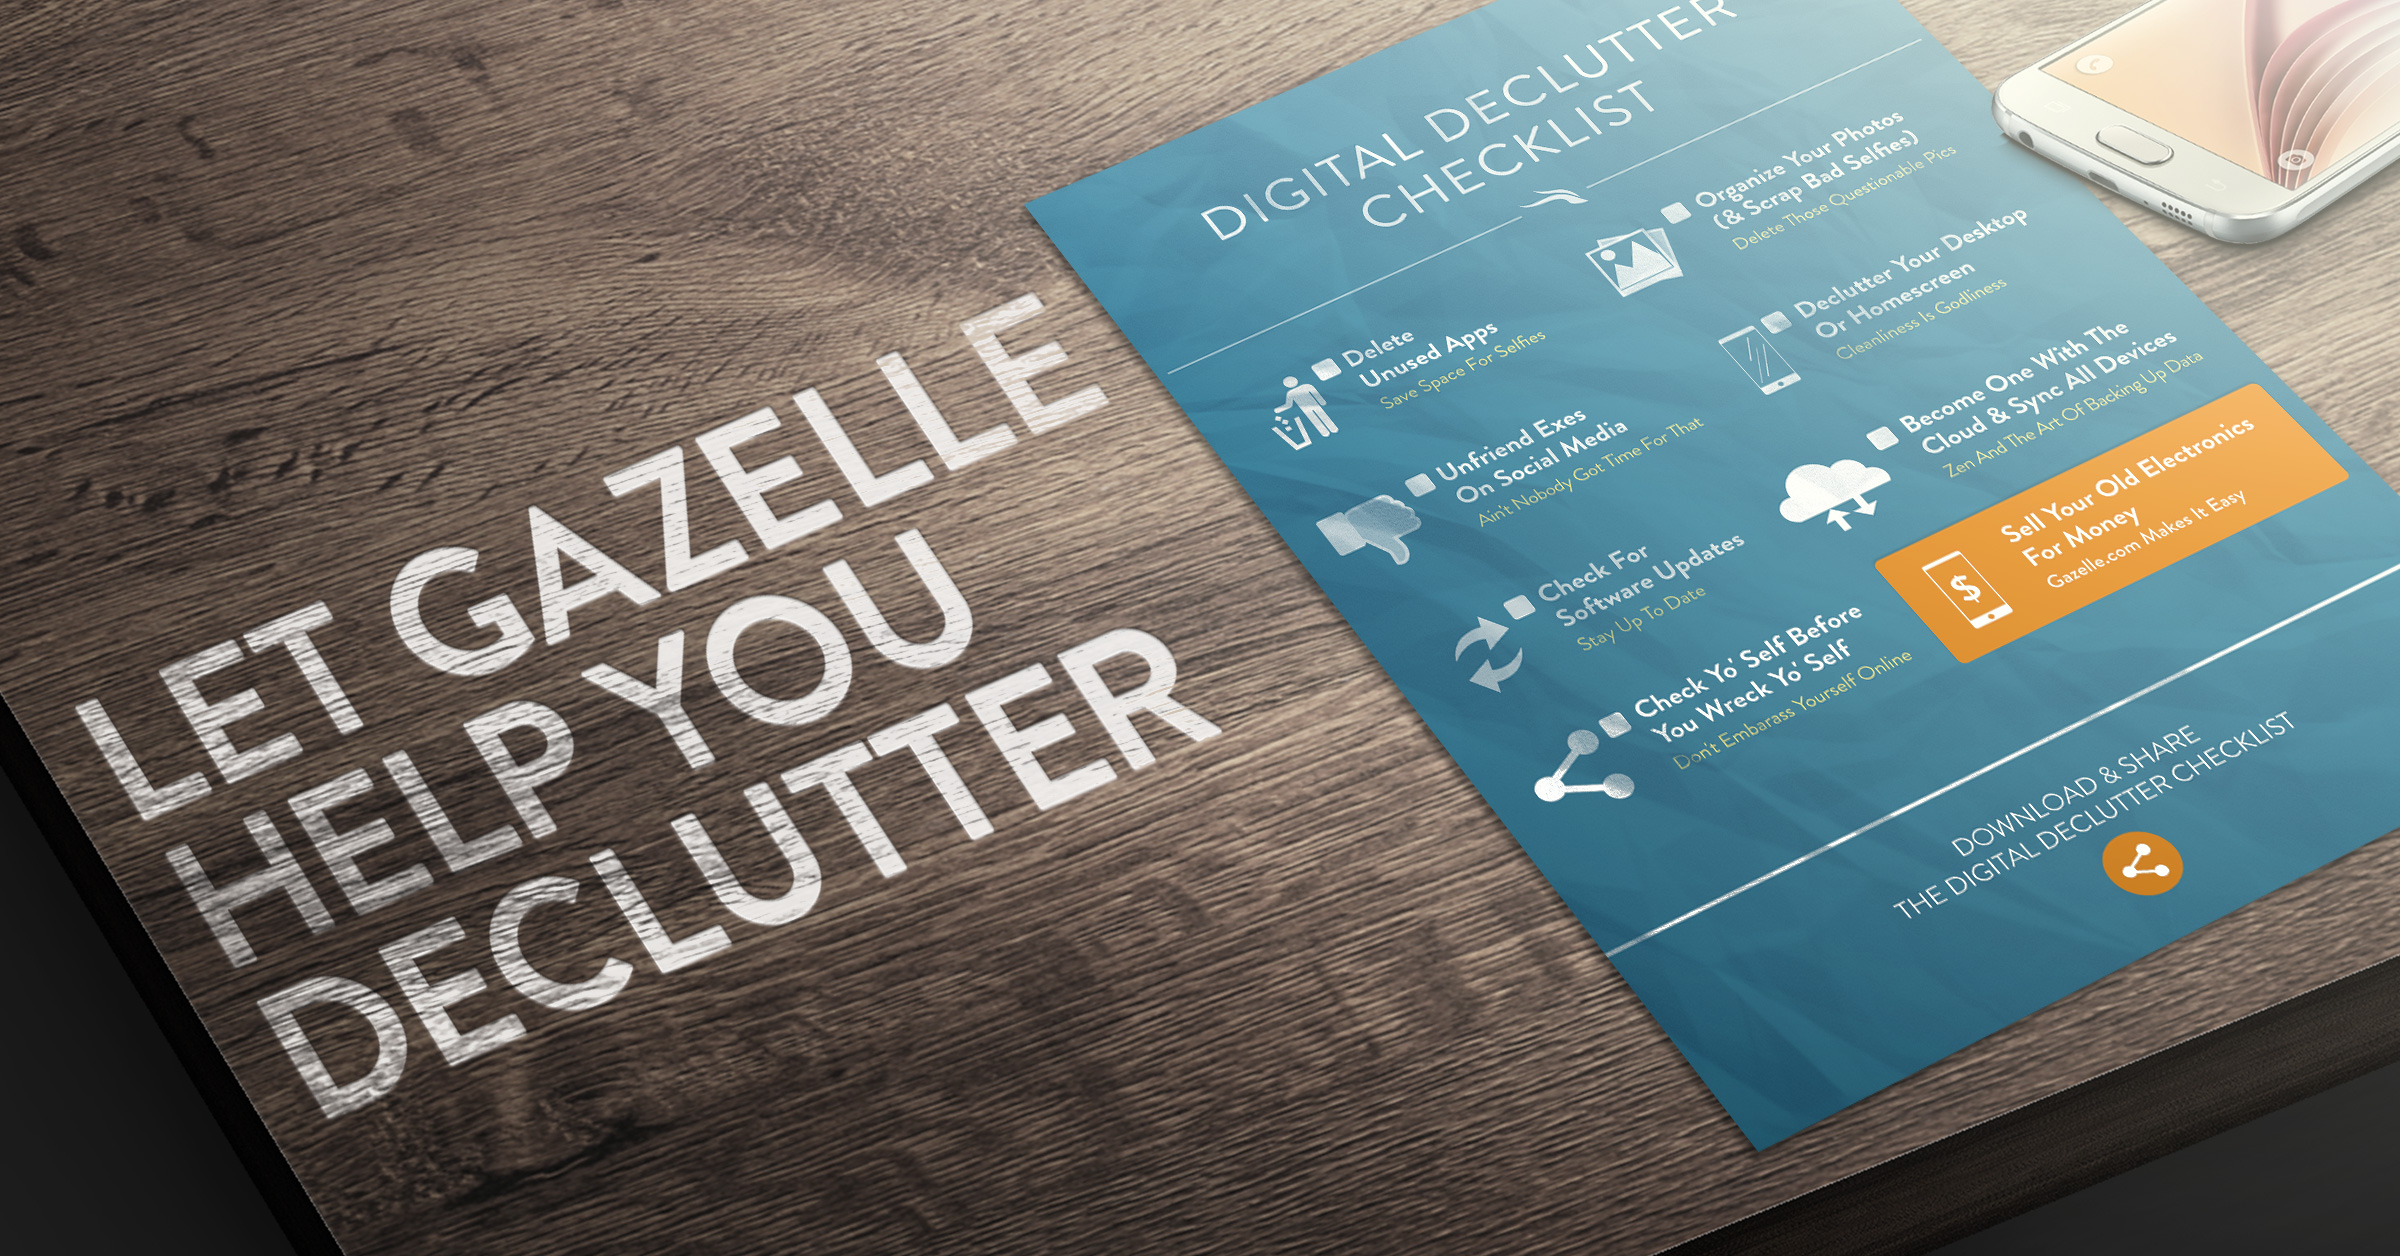 8 Simple Ways to Declutter Your Digital Life